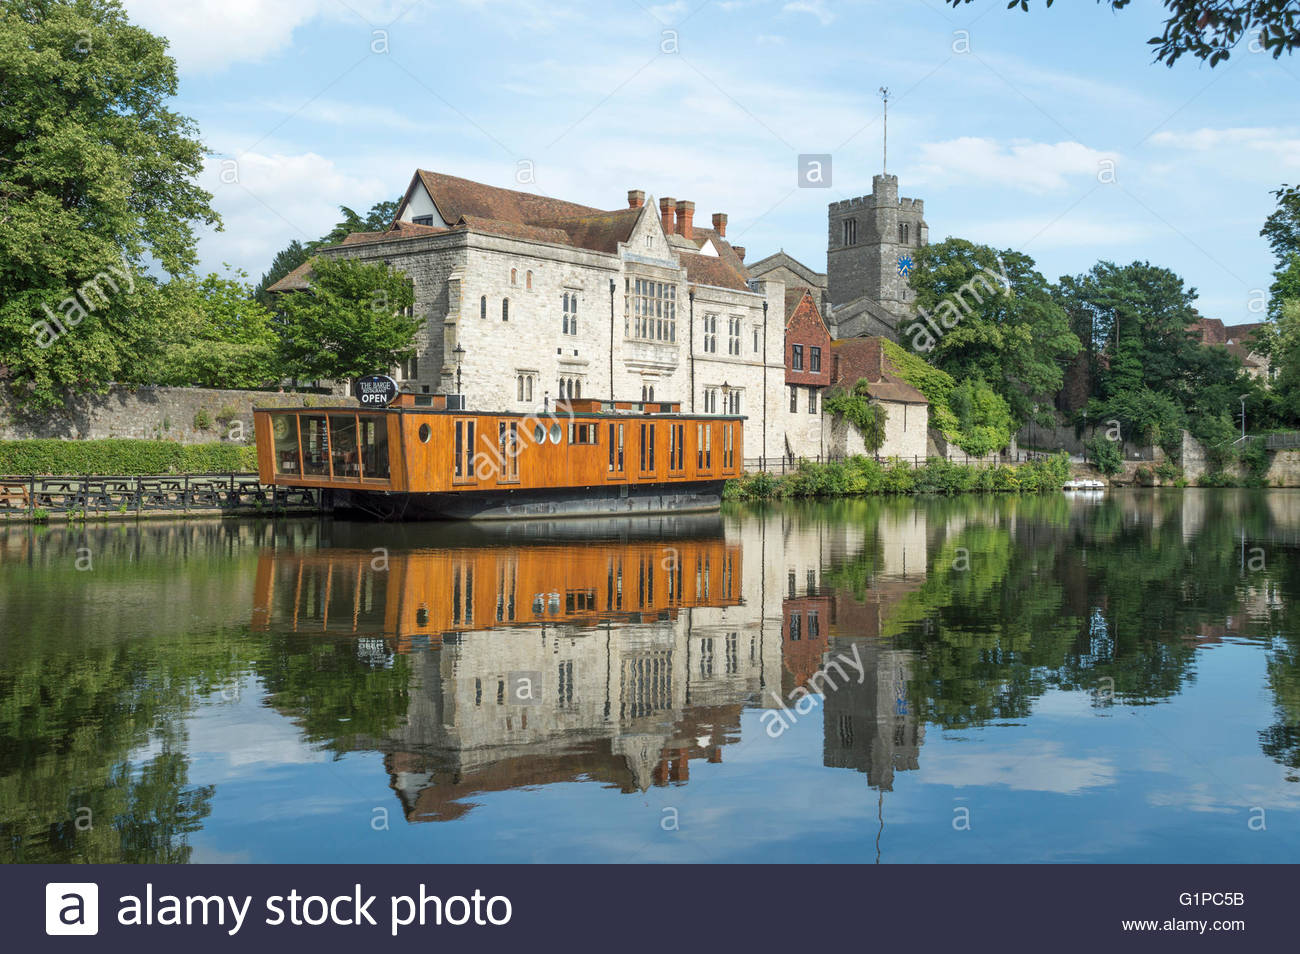 View across the River Medway to the opposite bank showing The Barge Restaurant  and it's reflections in the - Stock Image